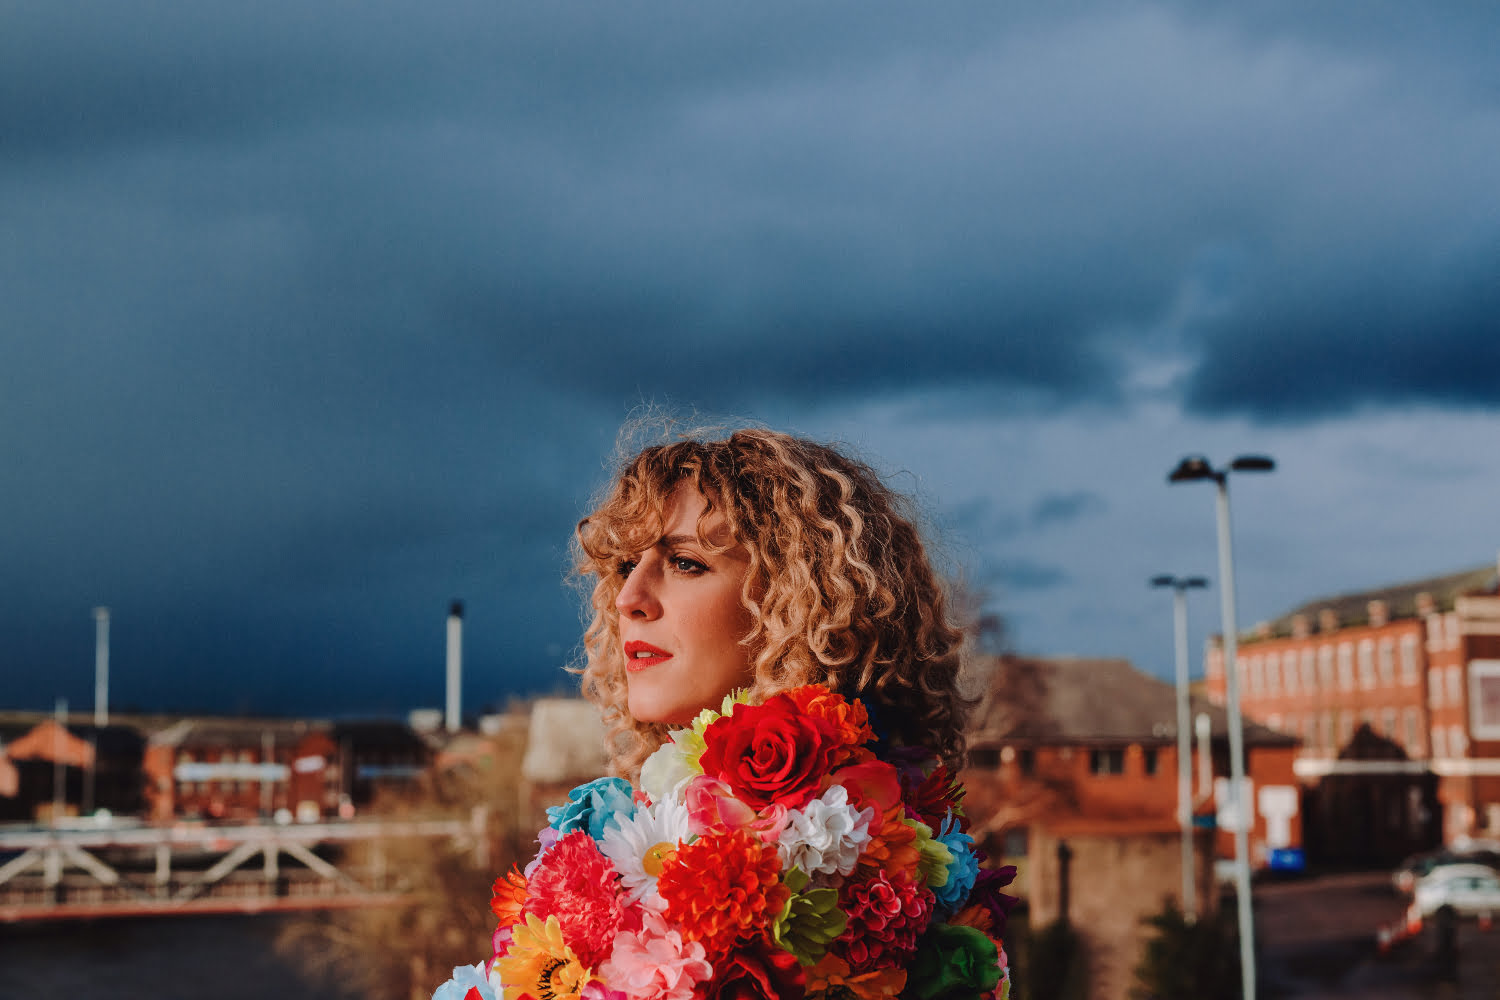 Lauren Housley Band - 'Girl From The North' UK Tour 2021plus support: Robbie Cavanagh